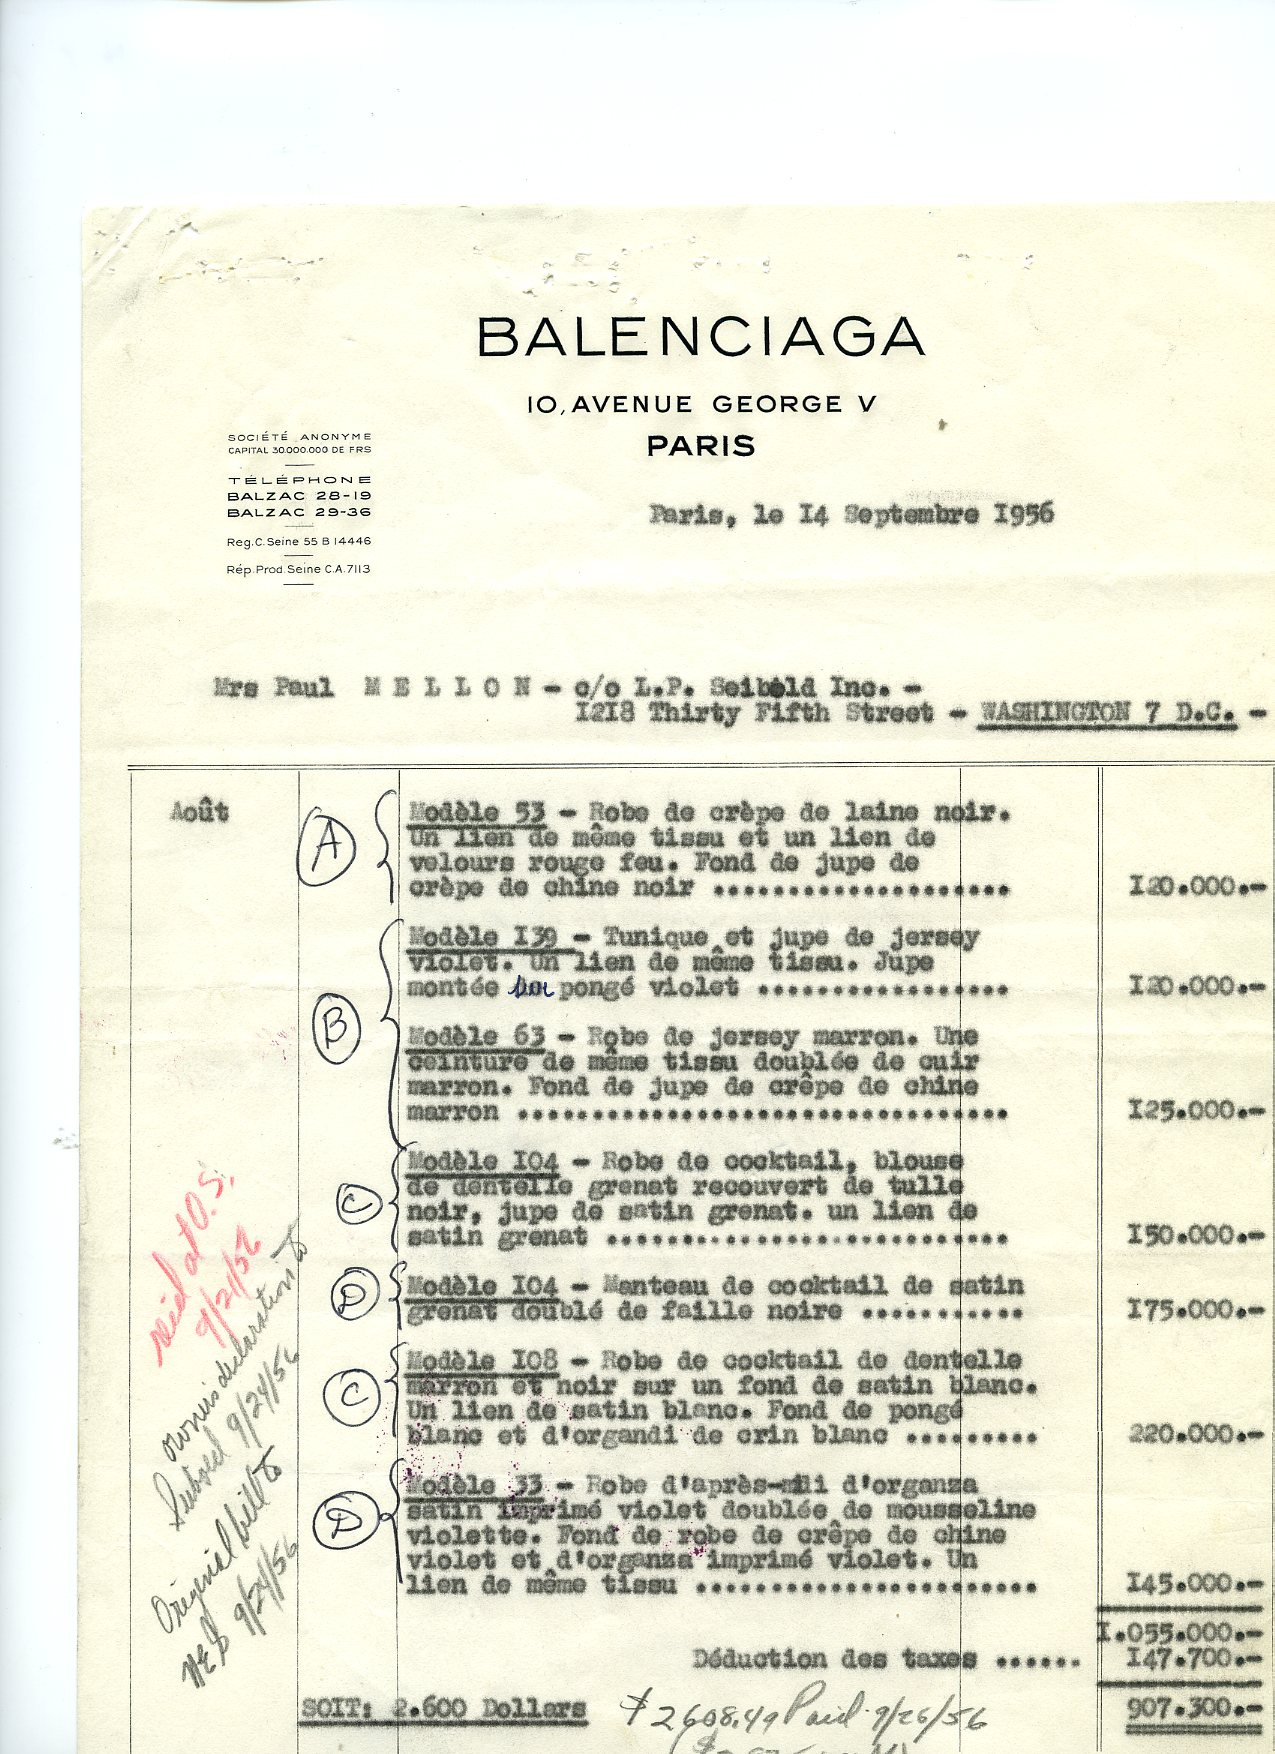 Factura de  BALENCIAGA para Mrs.Paul Mellon